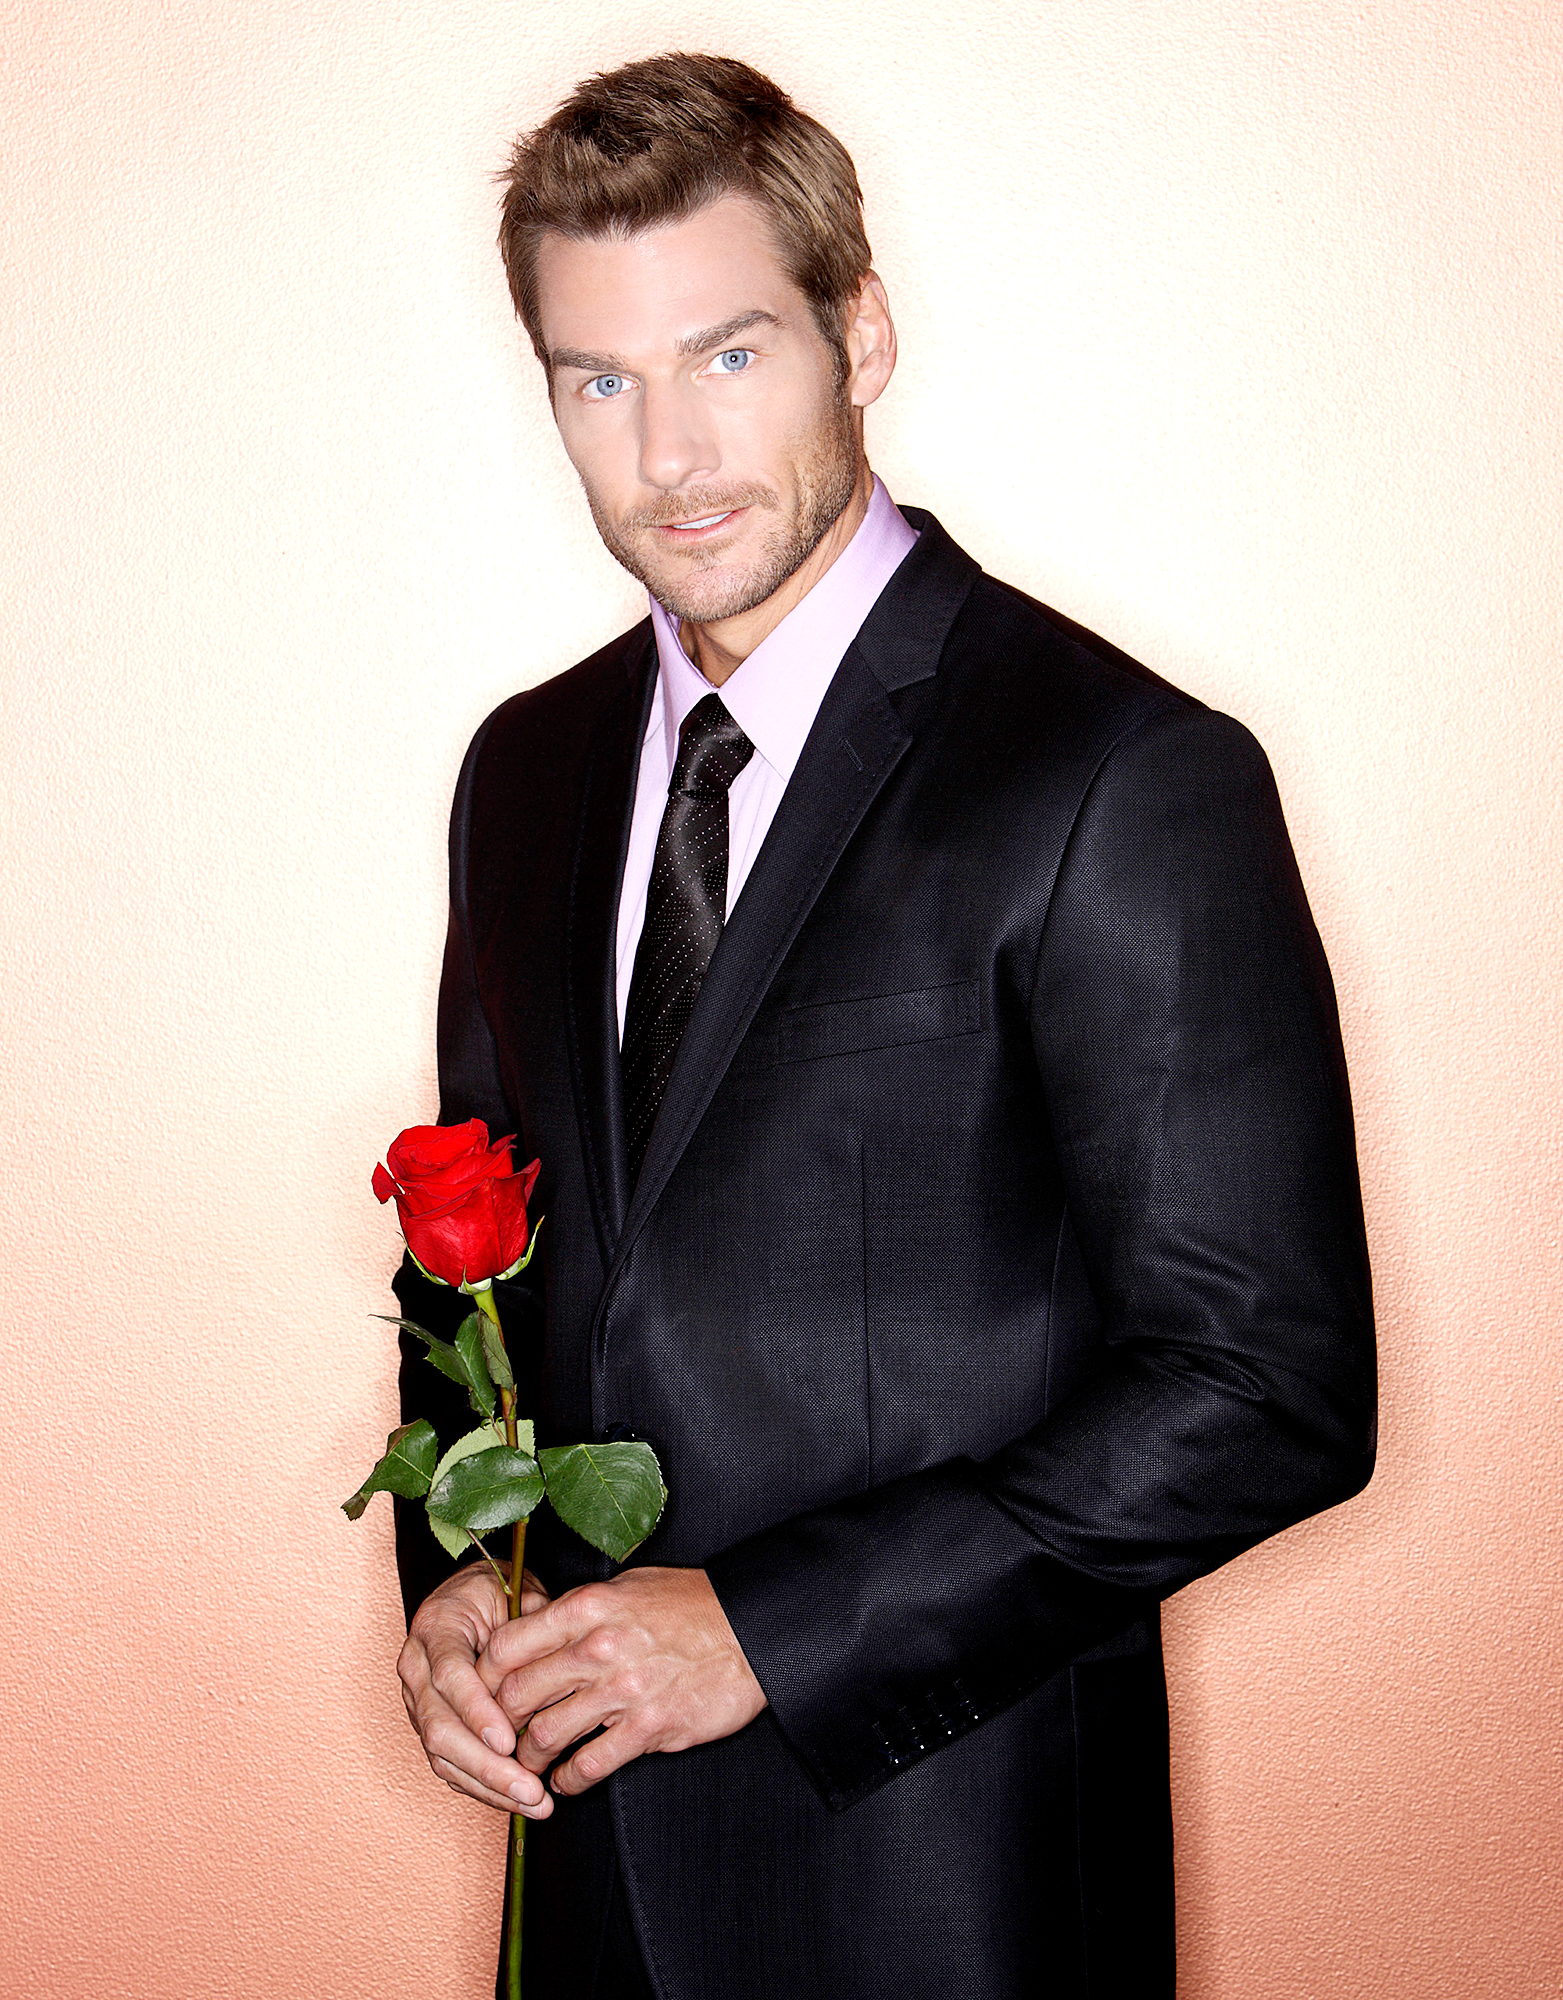 Brad-Womack - During his first stint as the Bachelor during season 11, the bar owner opted not to propose to — or date — his final two, DeAnna Pappas and Jenni Croft. Four years later, Brad returned as the series lead in 2011 and took the next step with Emily Maynard .